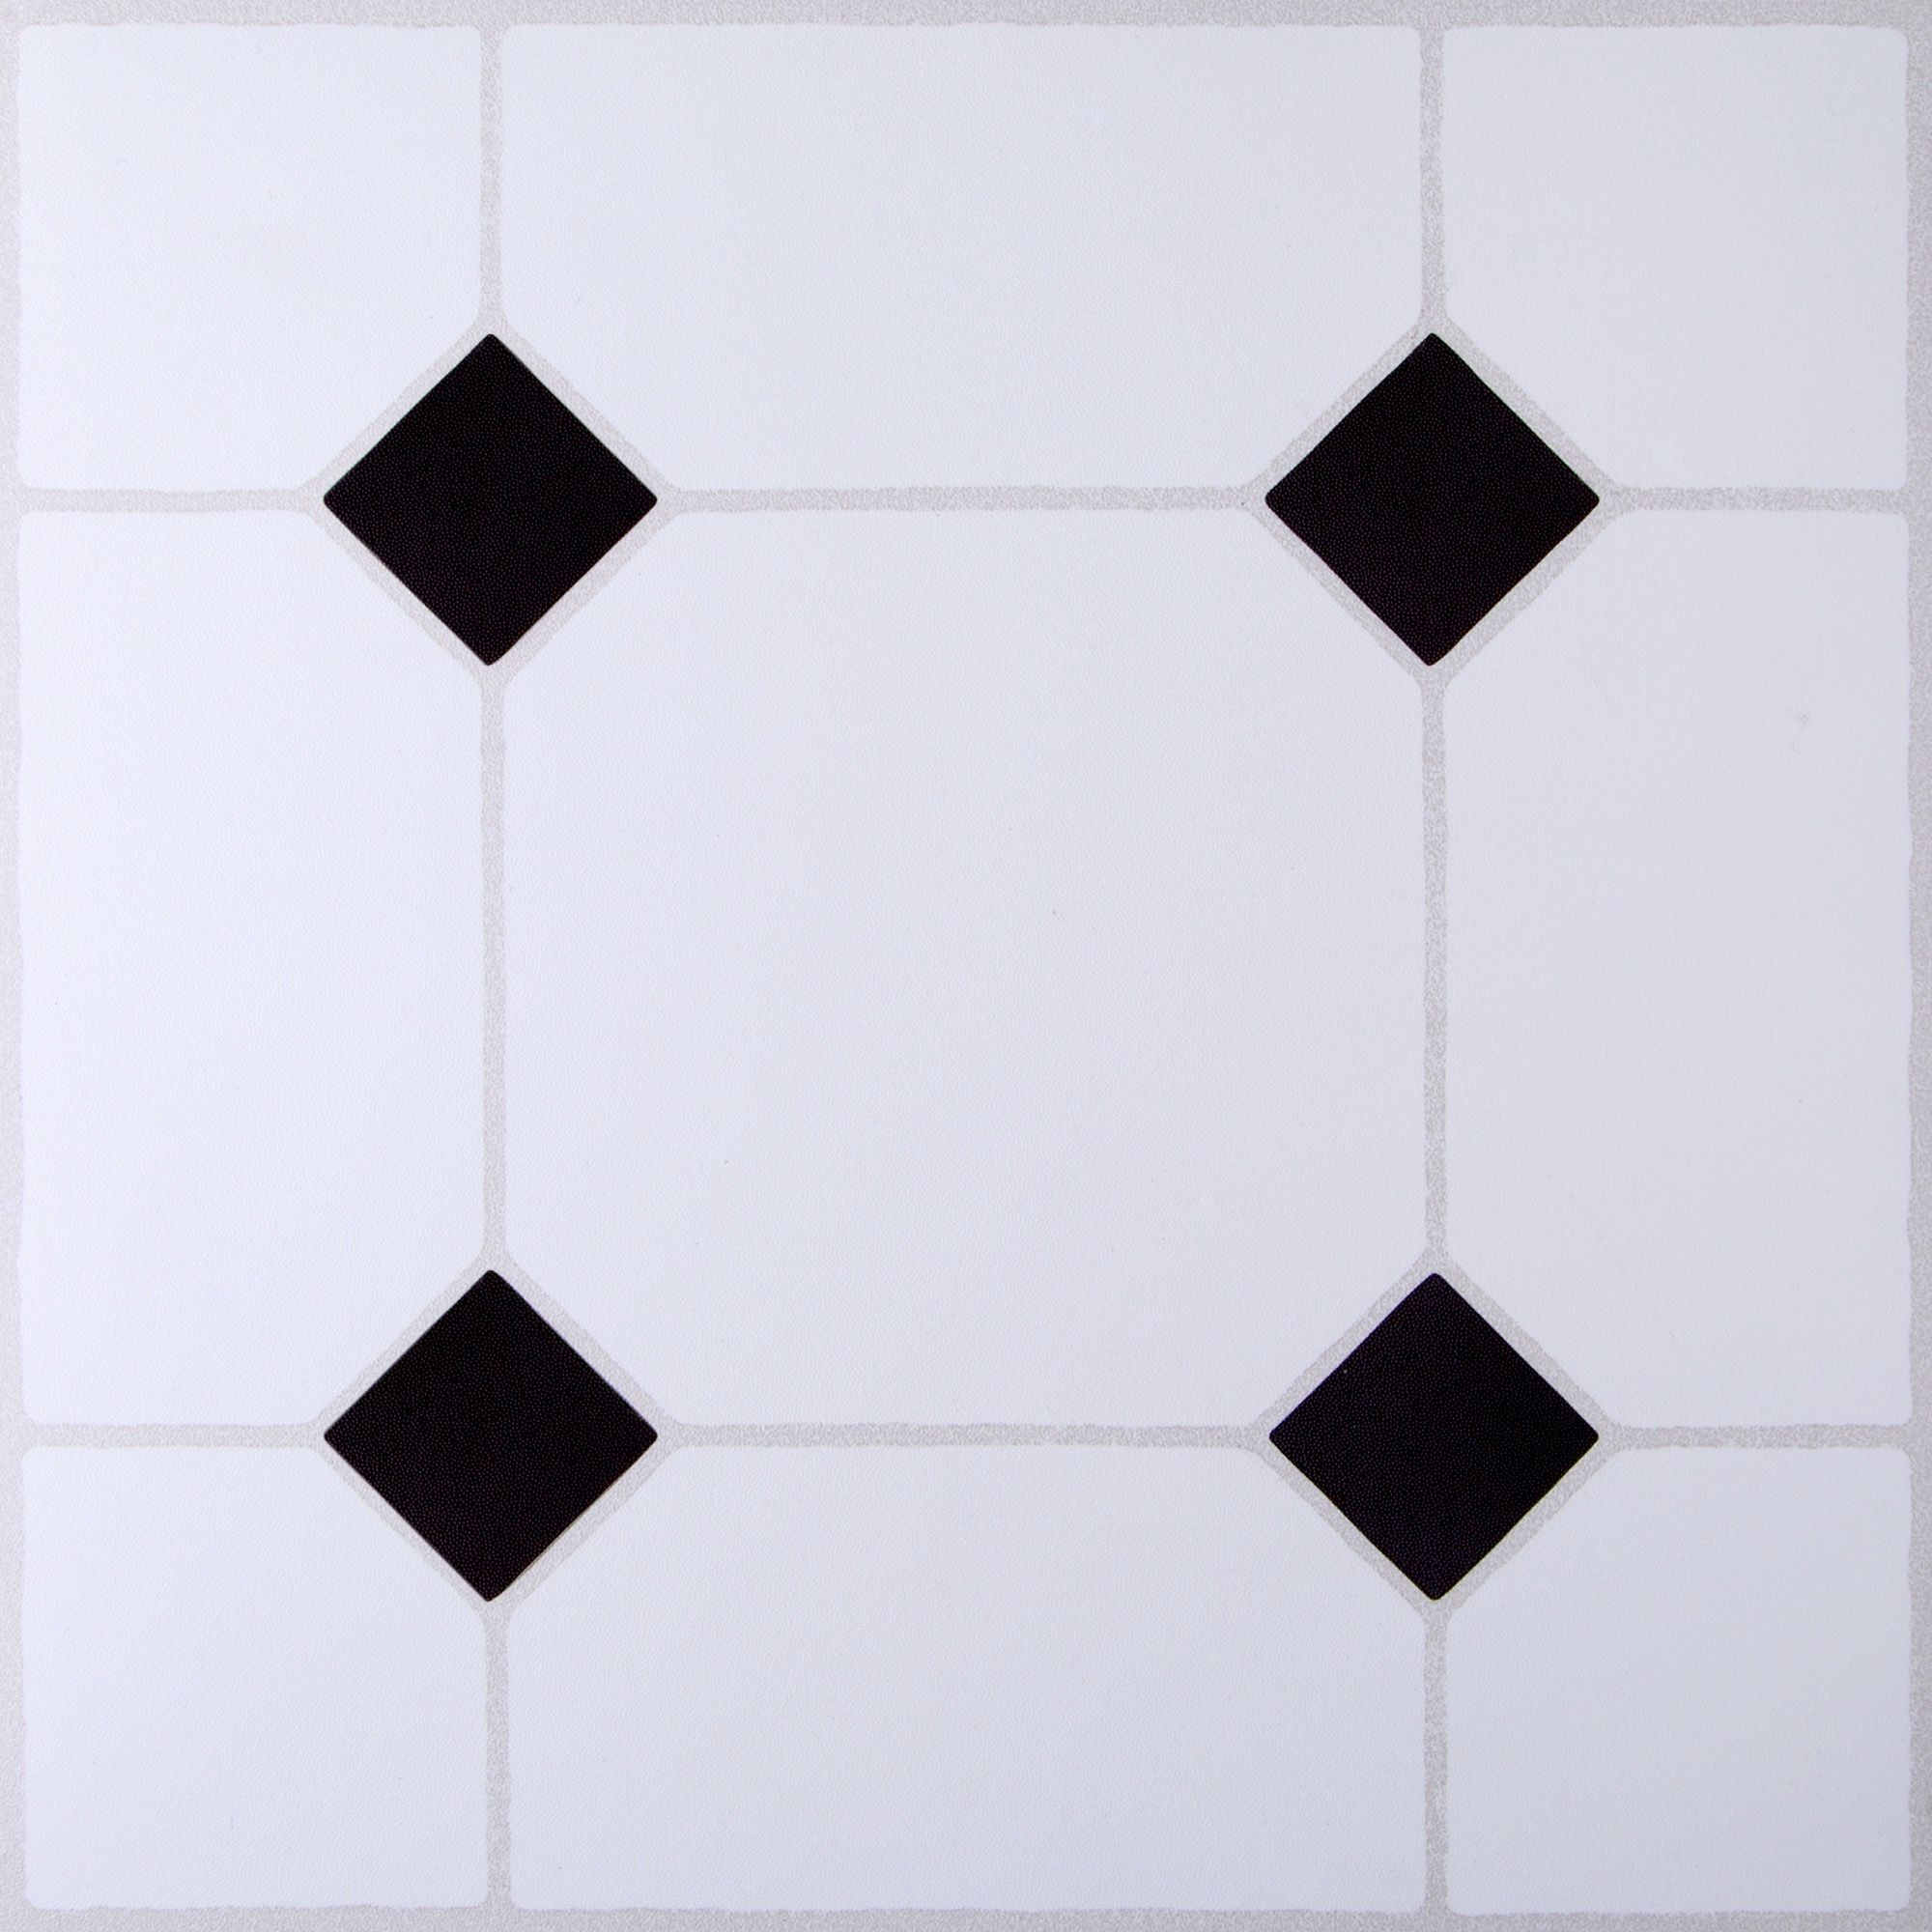 B Amp Q Black Amp White Tile Effect Self Adhesive Vinyl Tile 1